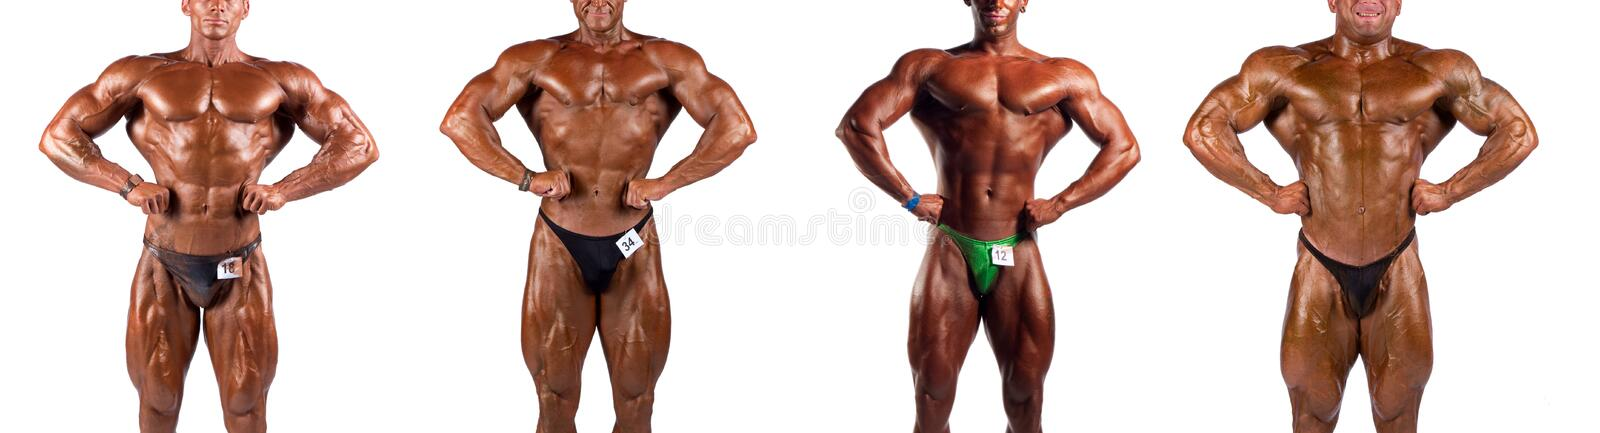 Bodybuilders flexing stock photos